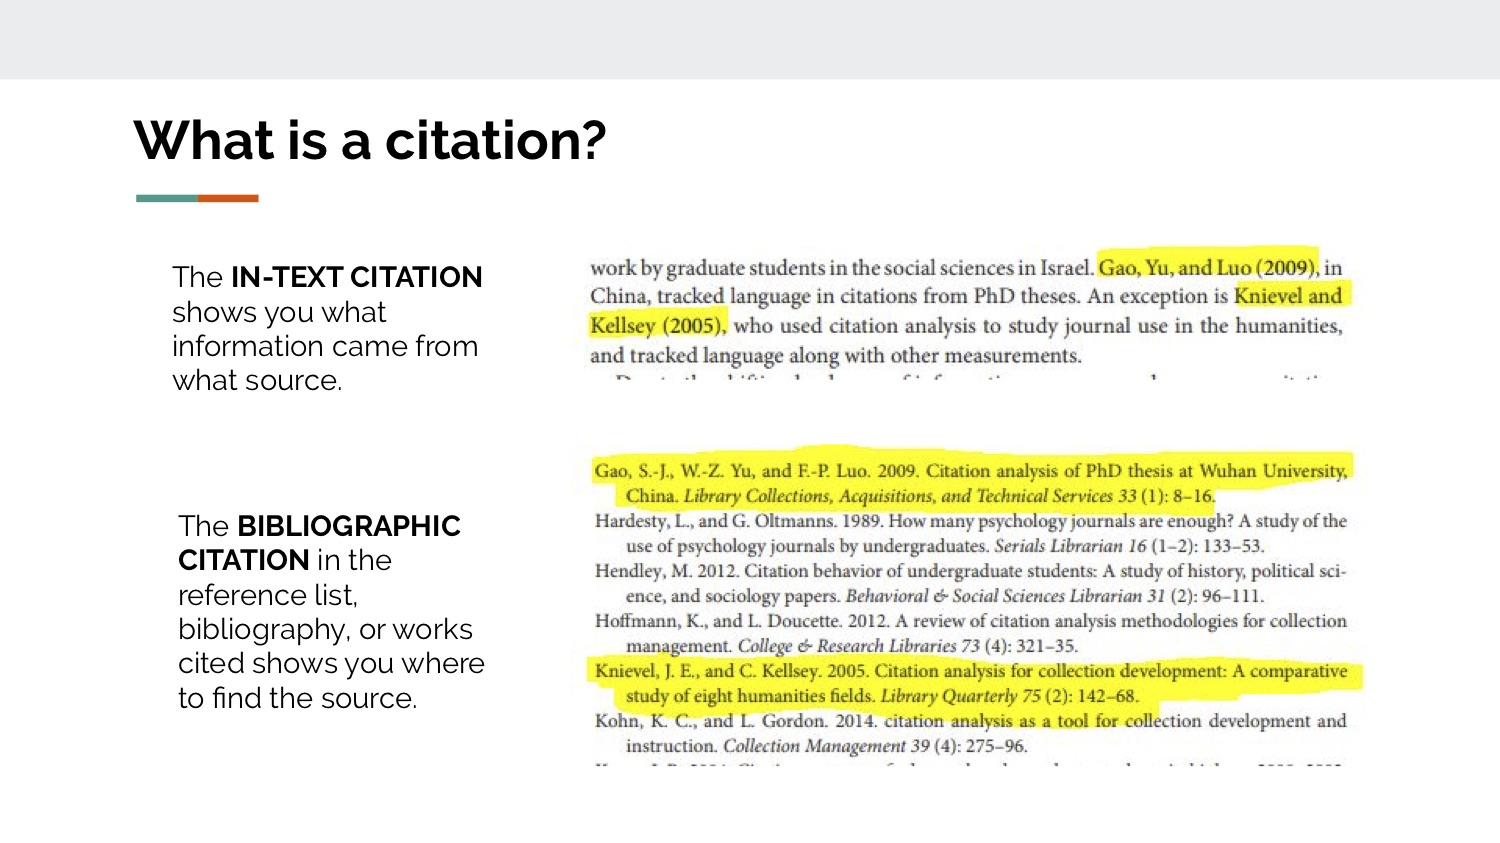 A citation is made up of two parts: 1) an in-text citation that indicates which words and ideas you borrowed from another source, and 2) a bibliographic citation that gives your reader all the information they need to find that source.